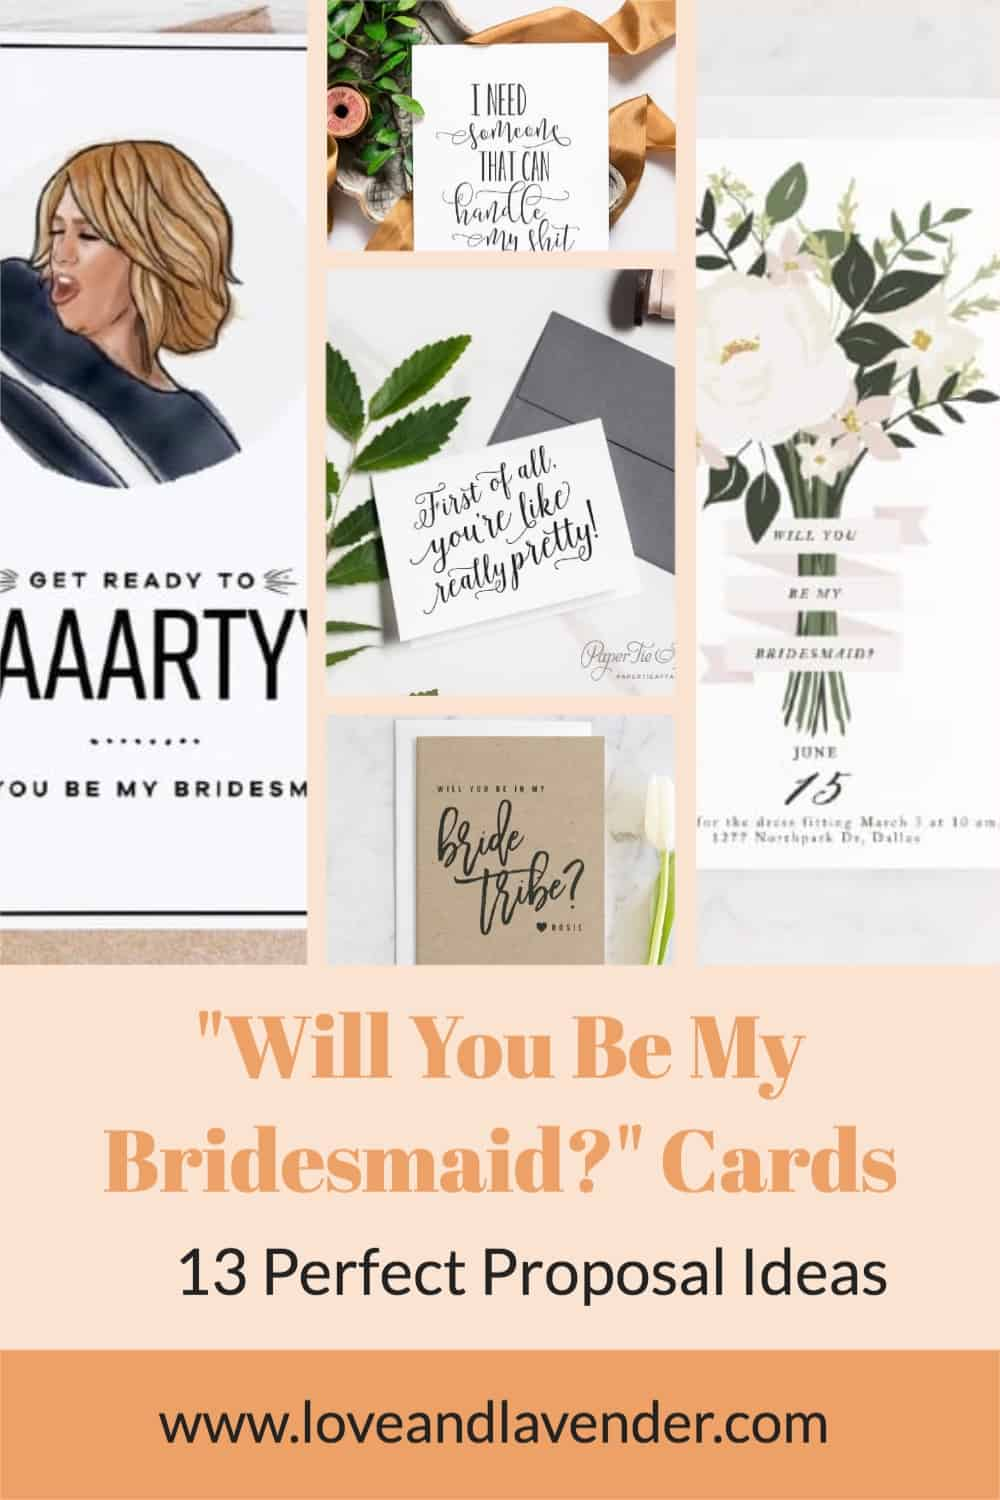 pinterest pin - will you be my bridesmaid cards